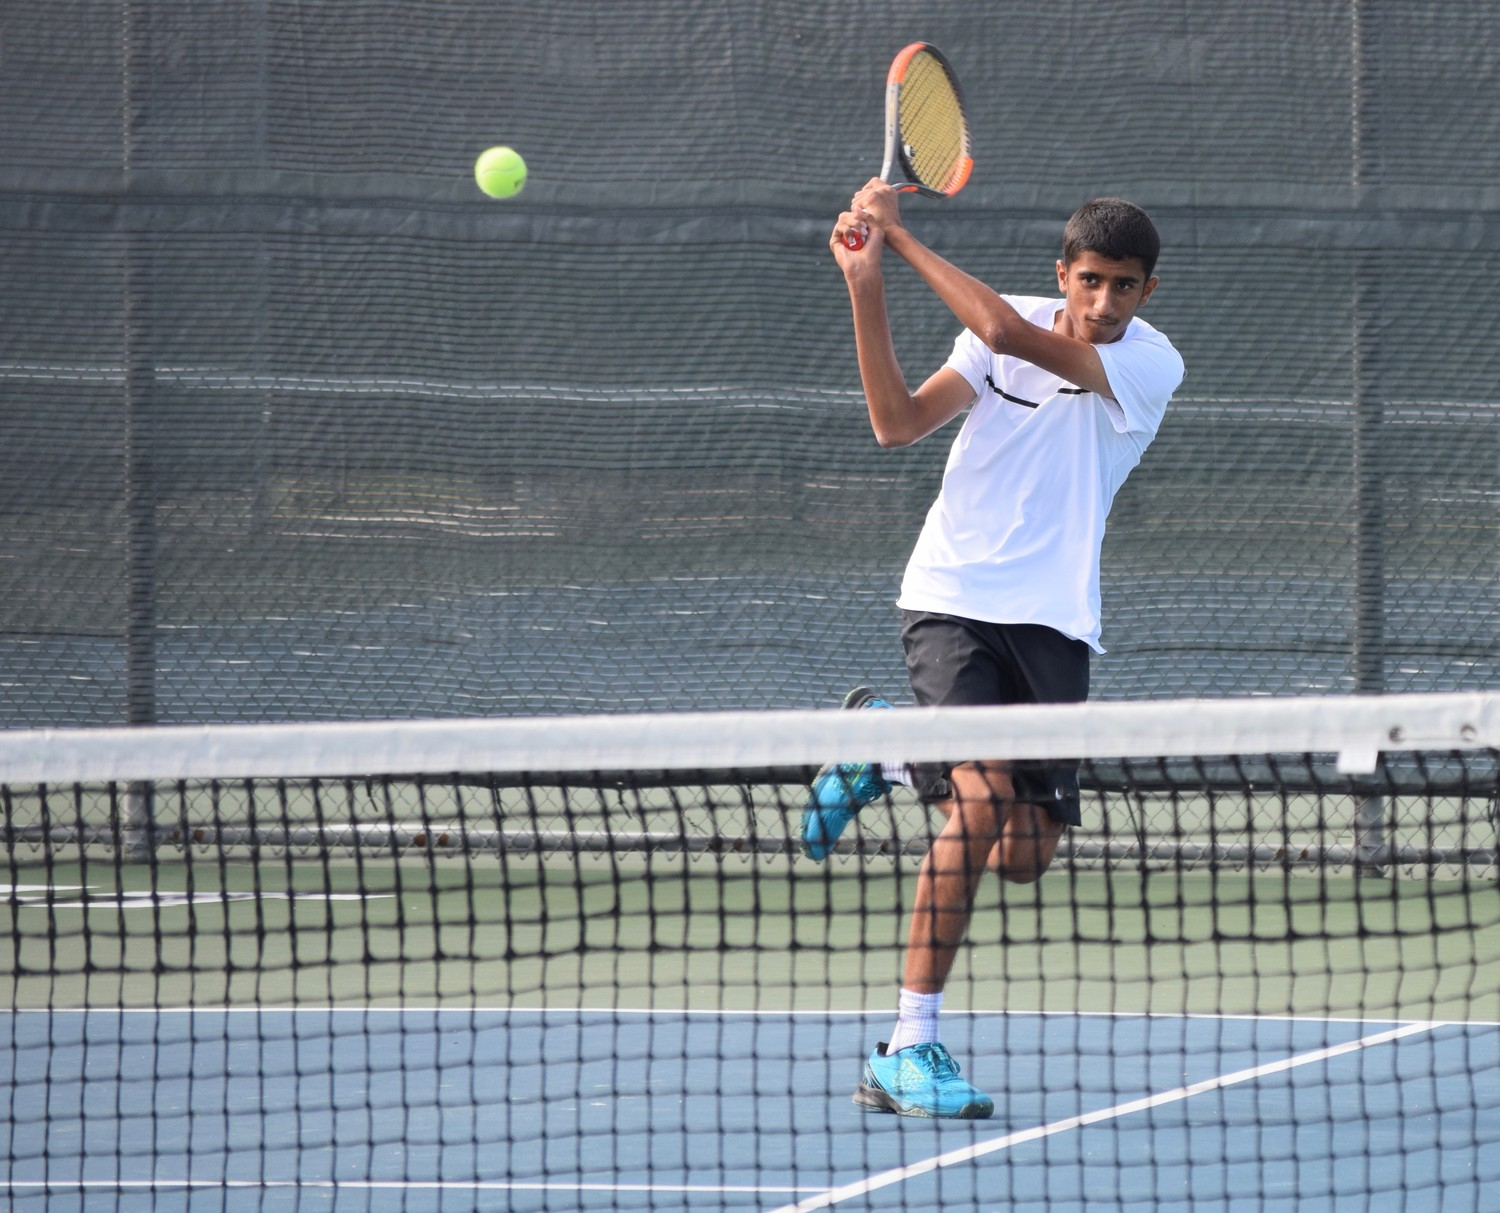 Jai Naik saw his No. 2 singles match against Lake Travis last week go to a decisive third set where he ultimately lost. The Vipers hope to get a rematch with the Cavaliers in the regional final.